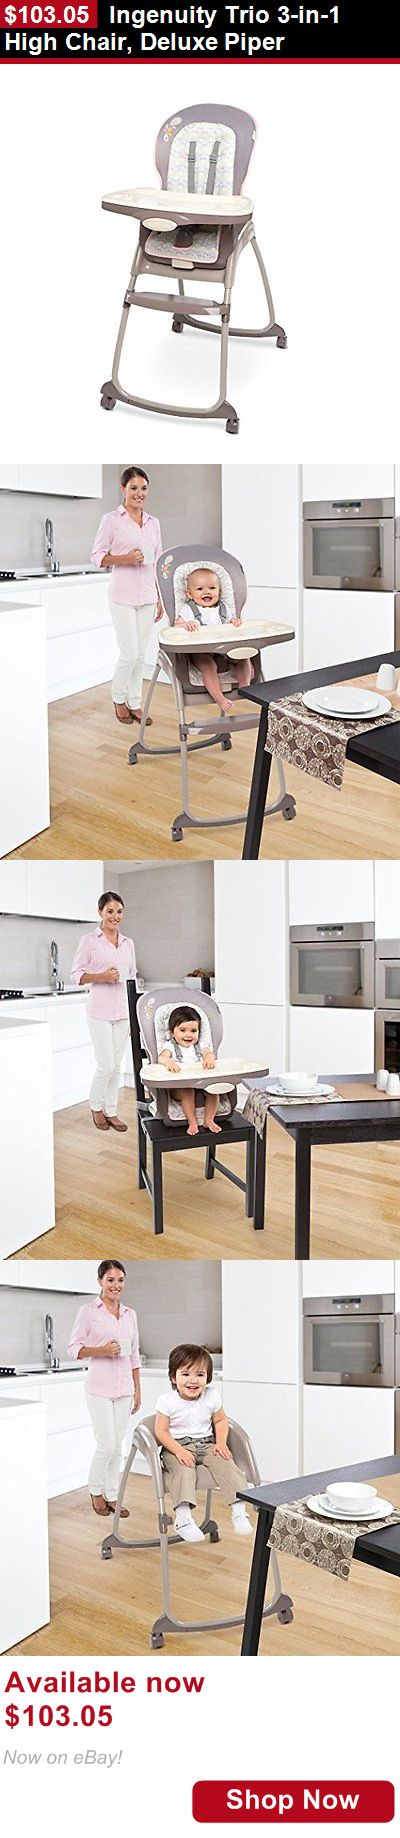 Baby High Chairs: Ingenuity Trio 3-In-1 High Chair, Deluxe Piper BUY IT NOW ONLY: $103.05